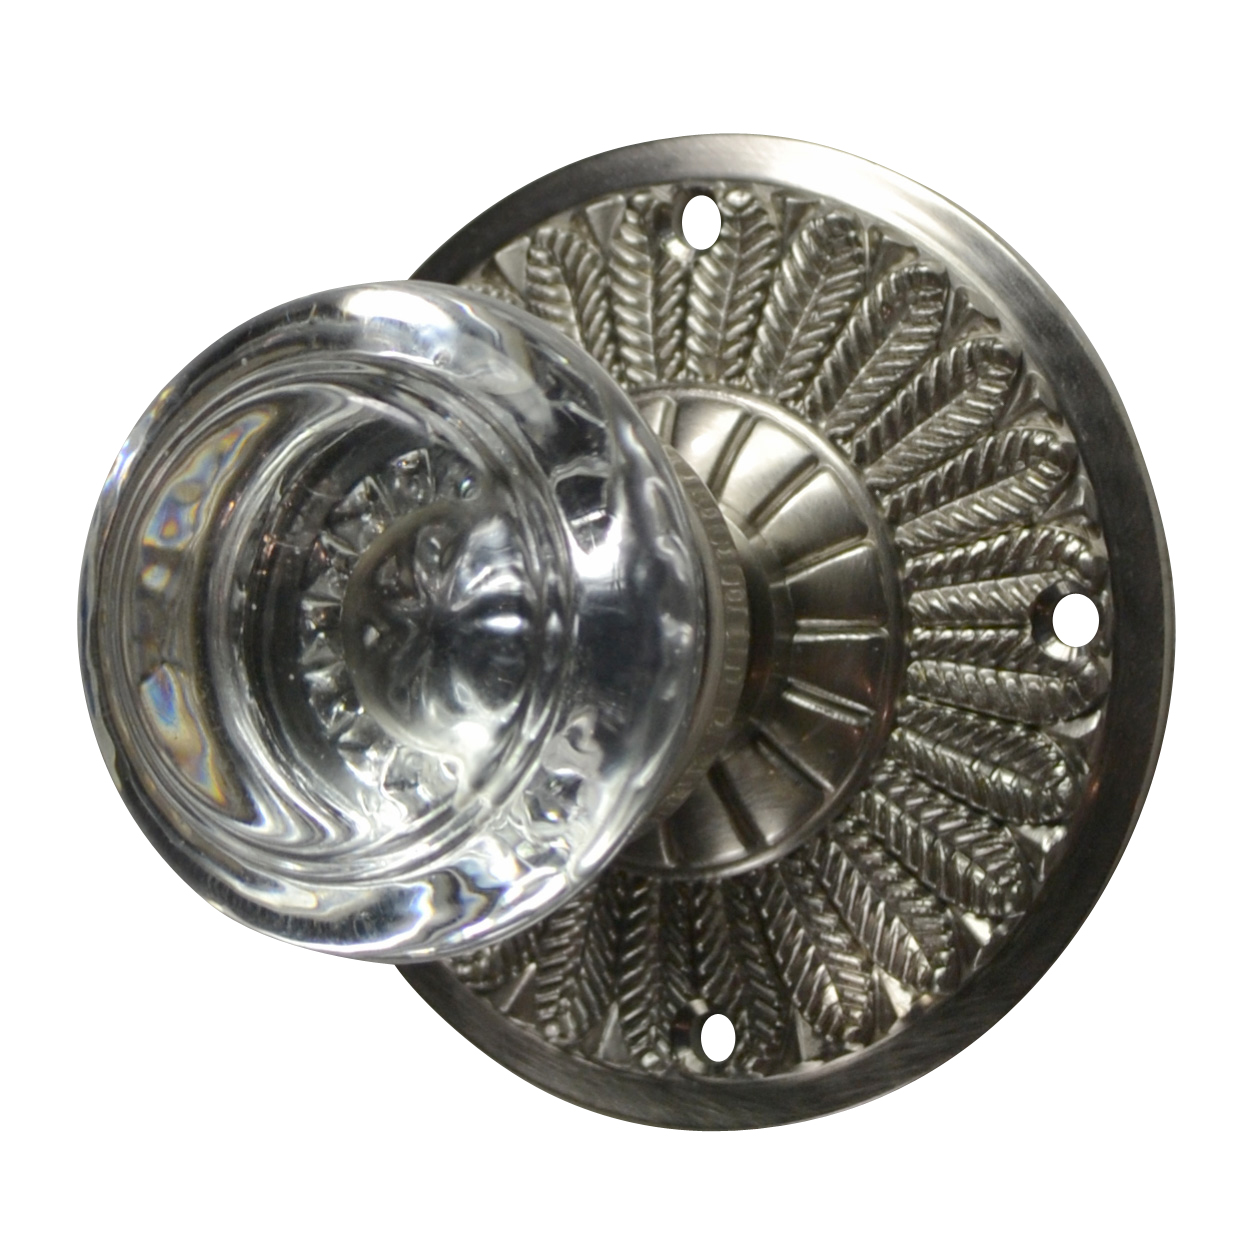 Feathers Round Glass Door Knob (Brushed Nickel Finish)